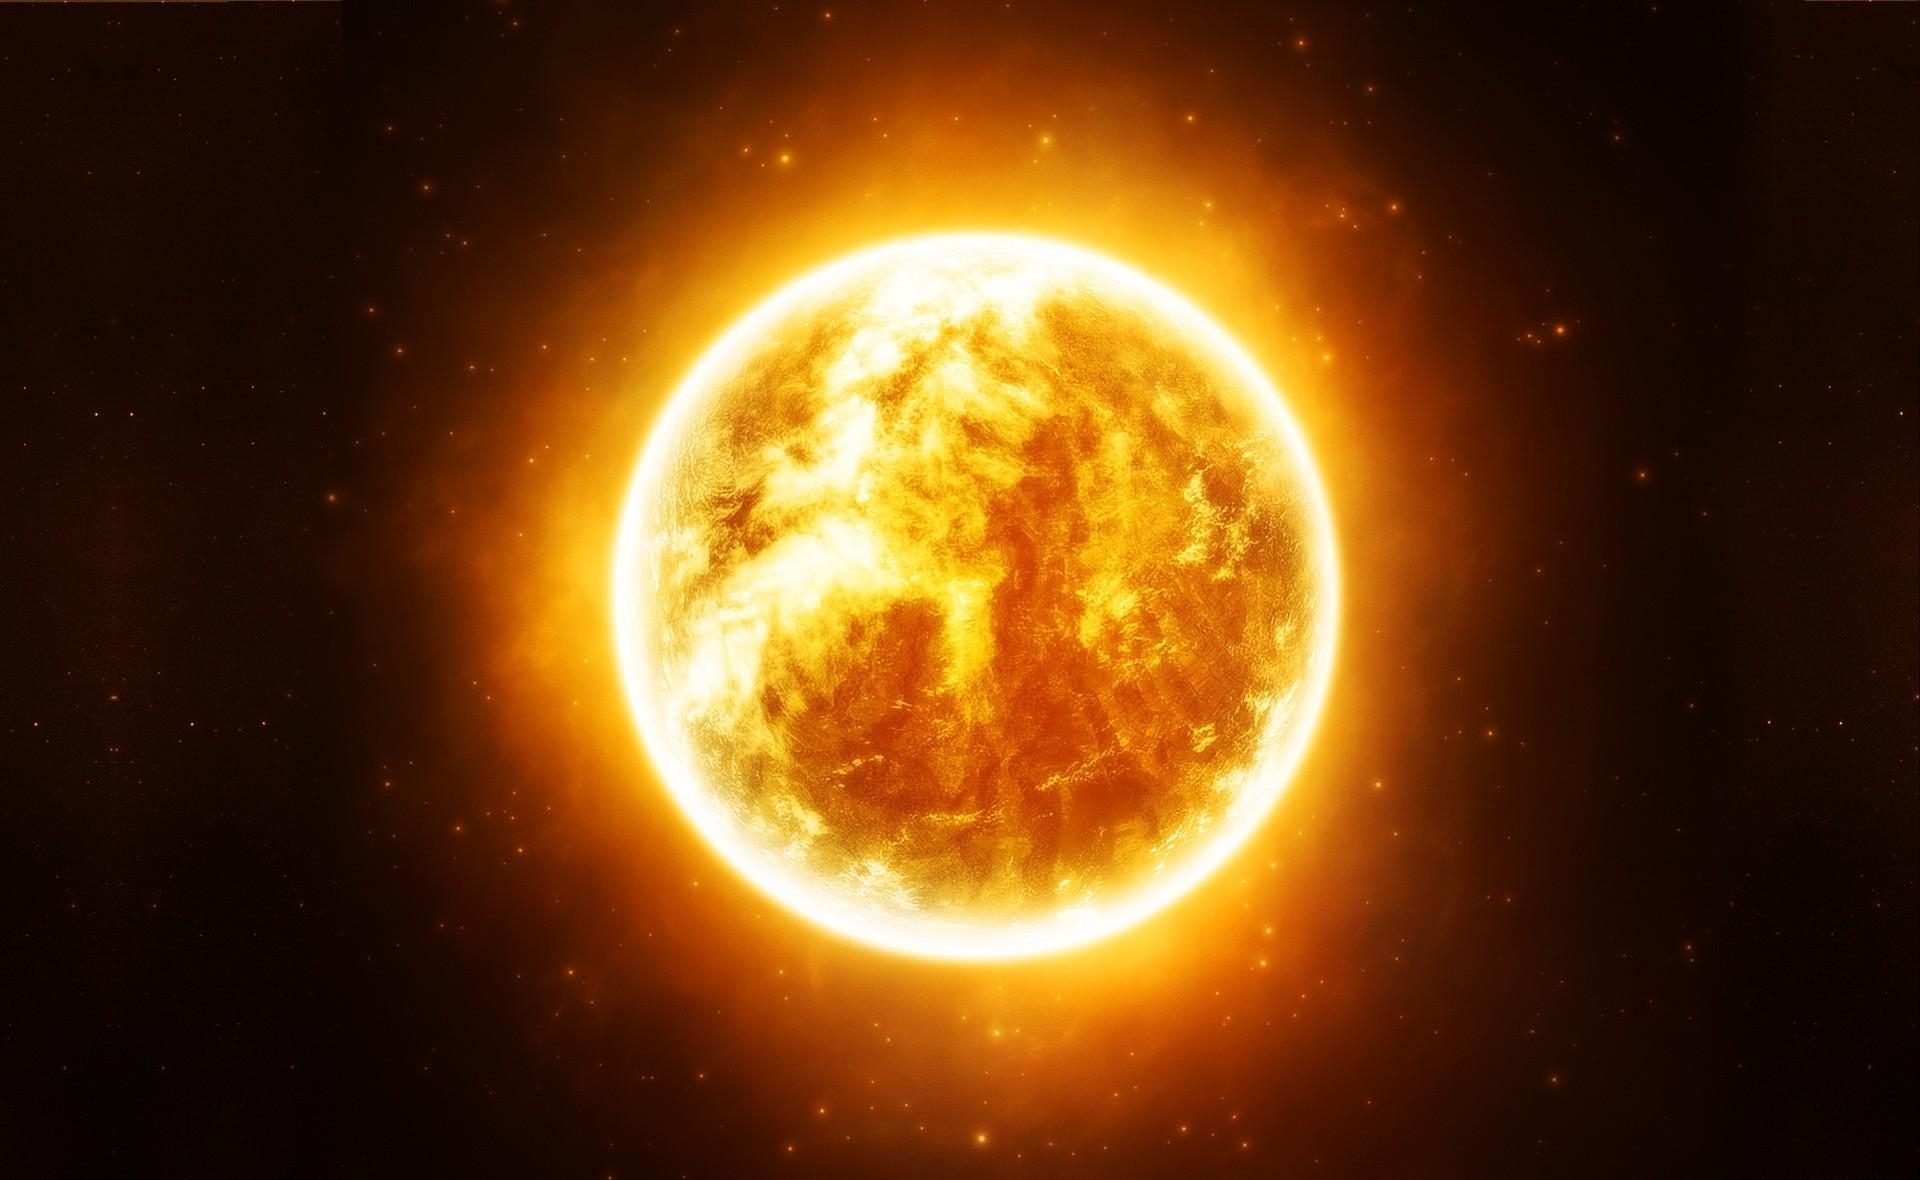 103259 download wallpaper Sun, Universe, Stars, Shine, Light screensavers and pictures for free